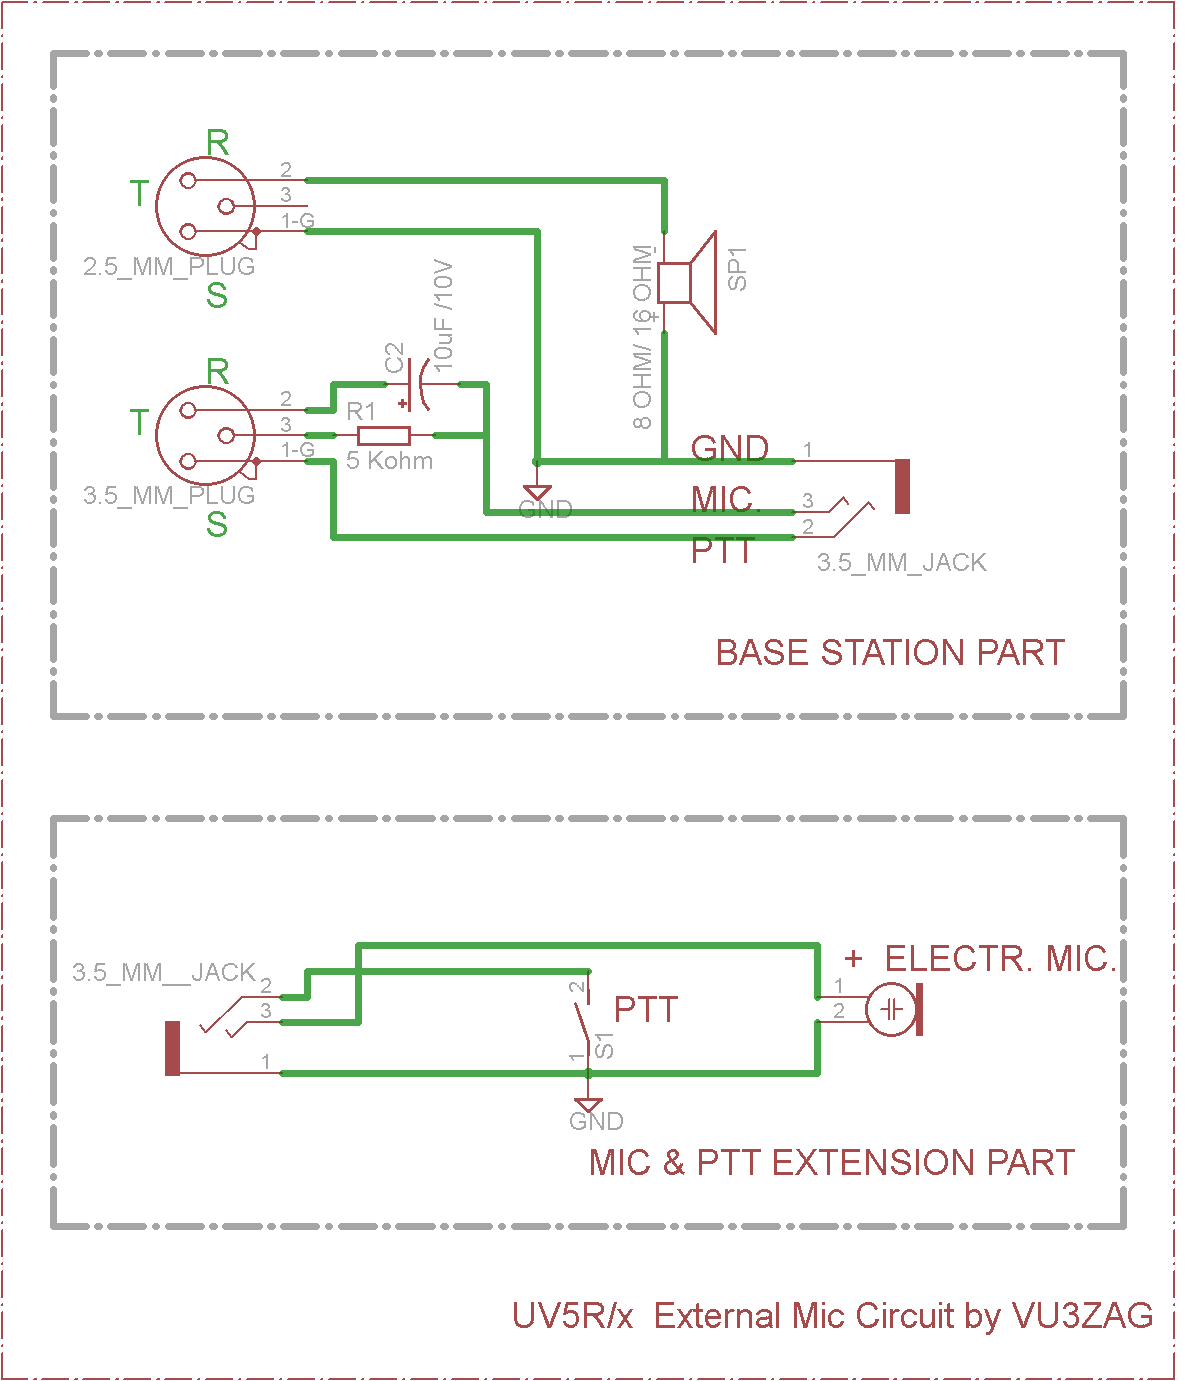 circuit drawing diagram vu3zag expedition circuit schema diagram baofeng headset